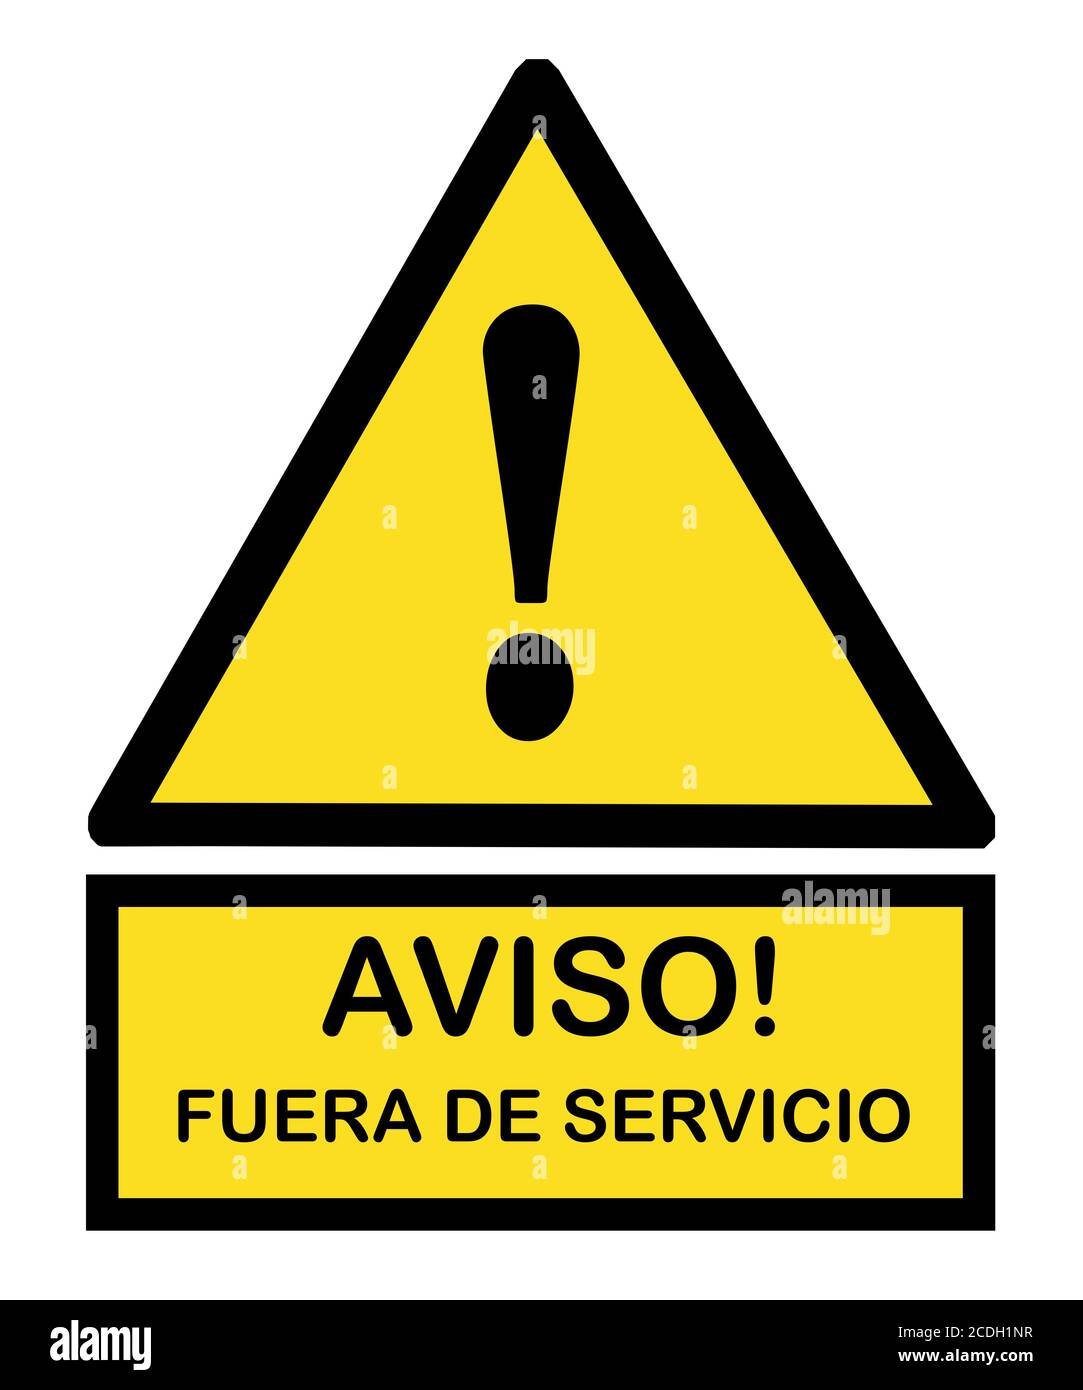 Aviso fuera de servicio señal : notice out of service sign with yellow triangle and exclamation point mark Stock Photo